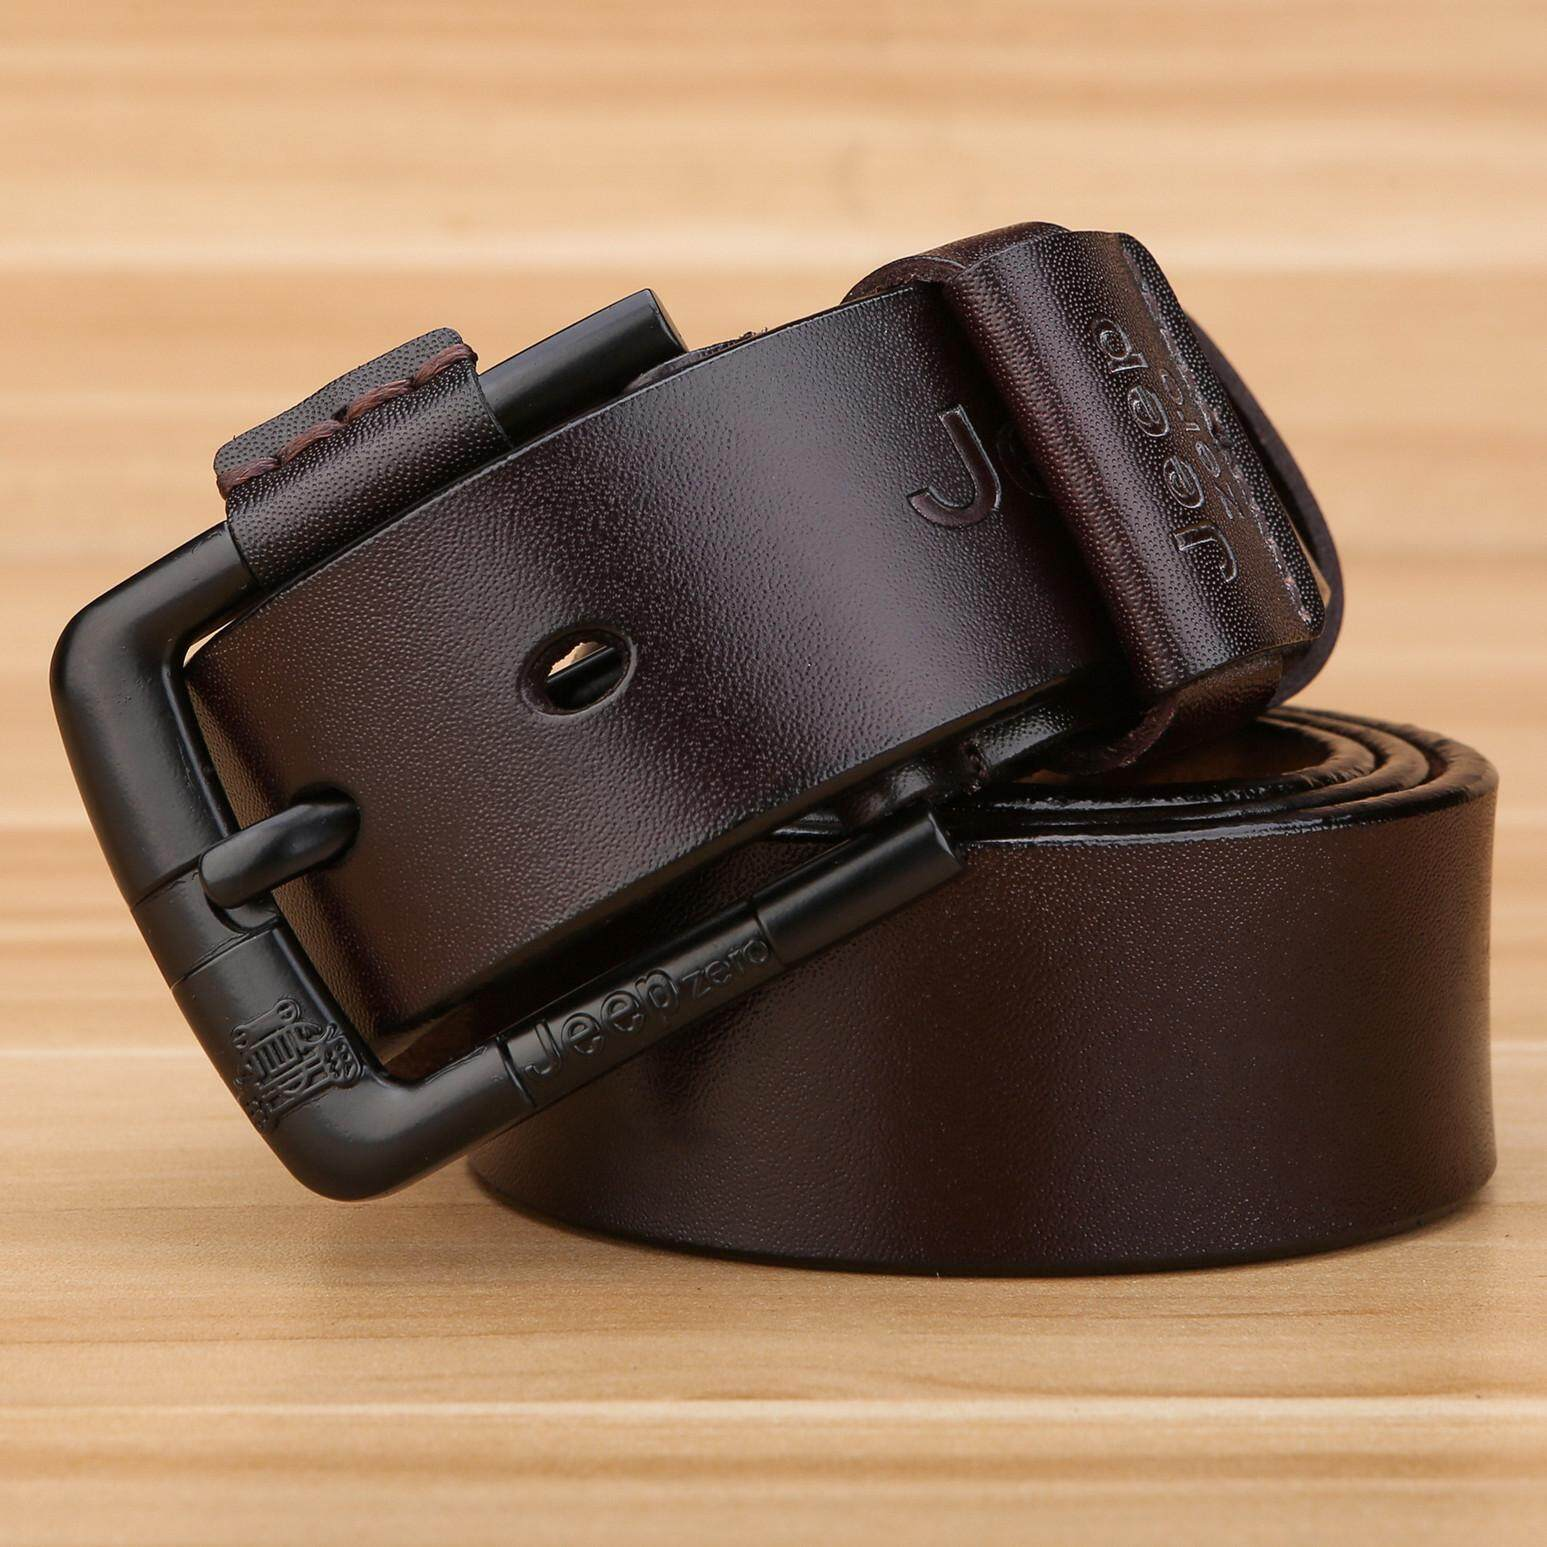 Buy One Get A Beautiful Necklace 2019 New Fashion Genuine Leather Belt For Men Business Suit/ Jeans Belt 3.8cm Width 125cm Length Can Be Cut (brown) By Yfcgood&store.